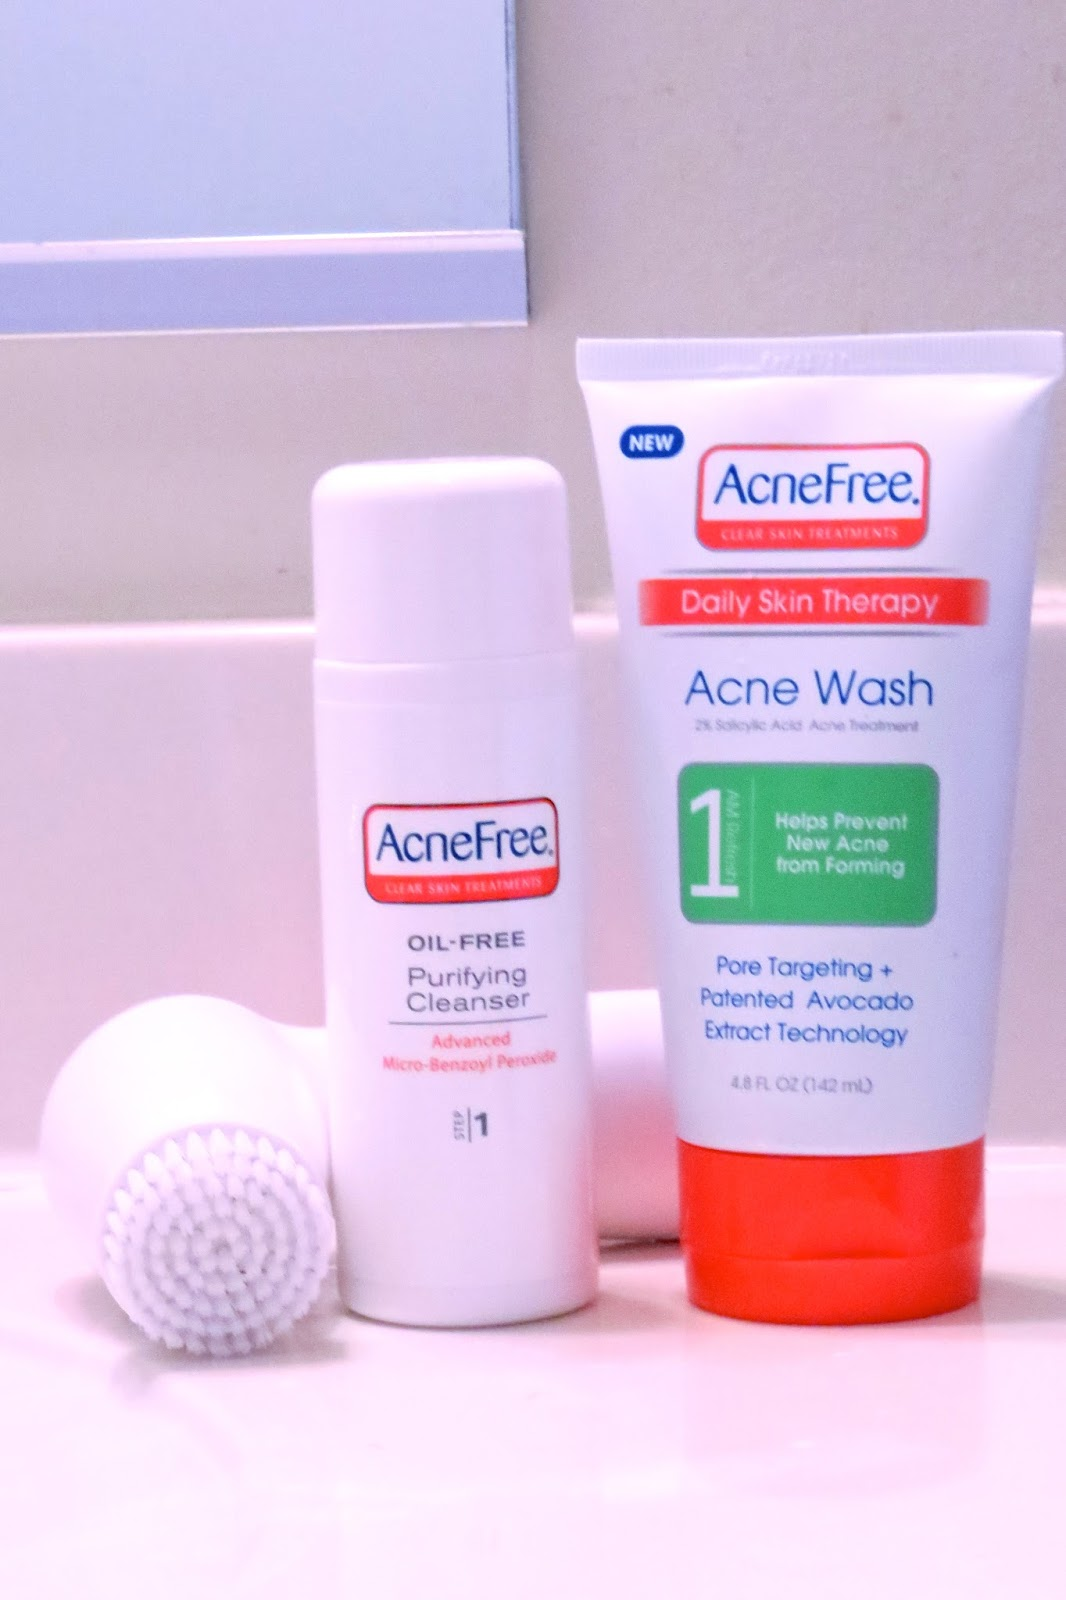 AcneFree Face cleansing products